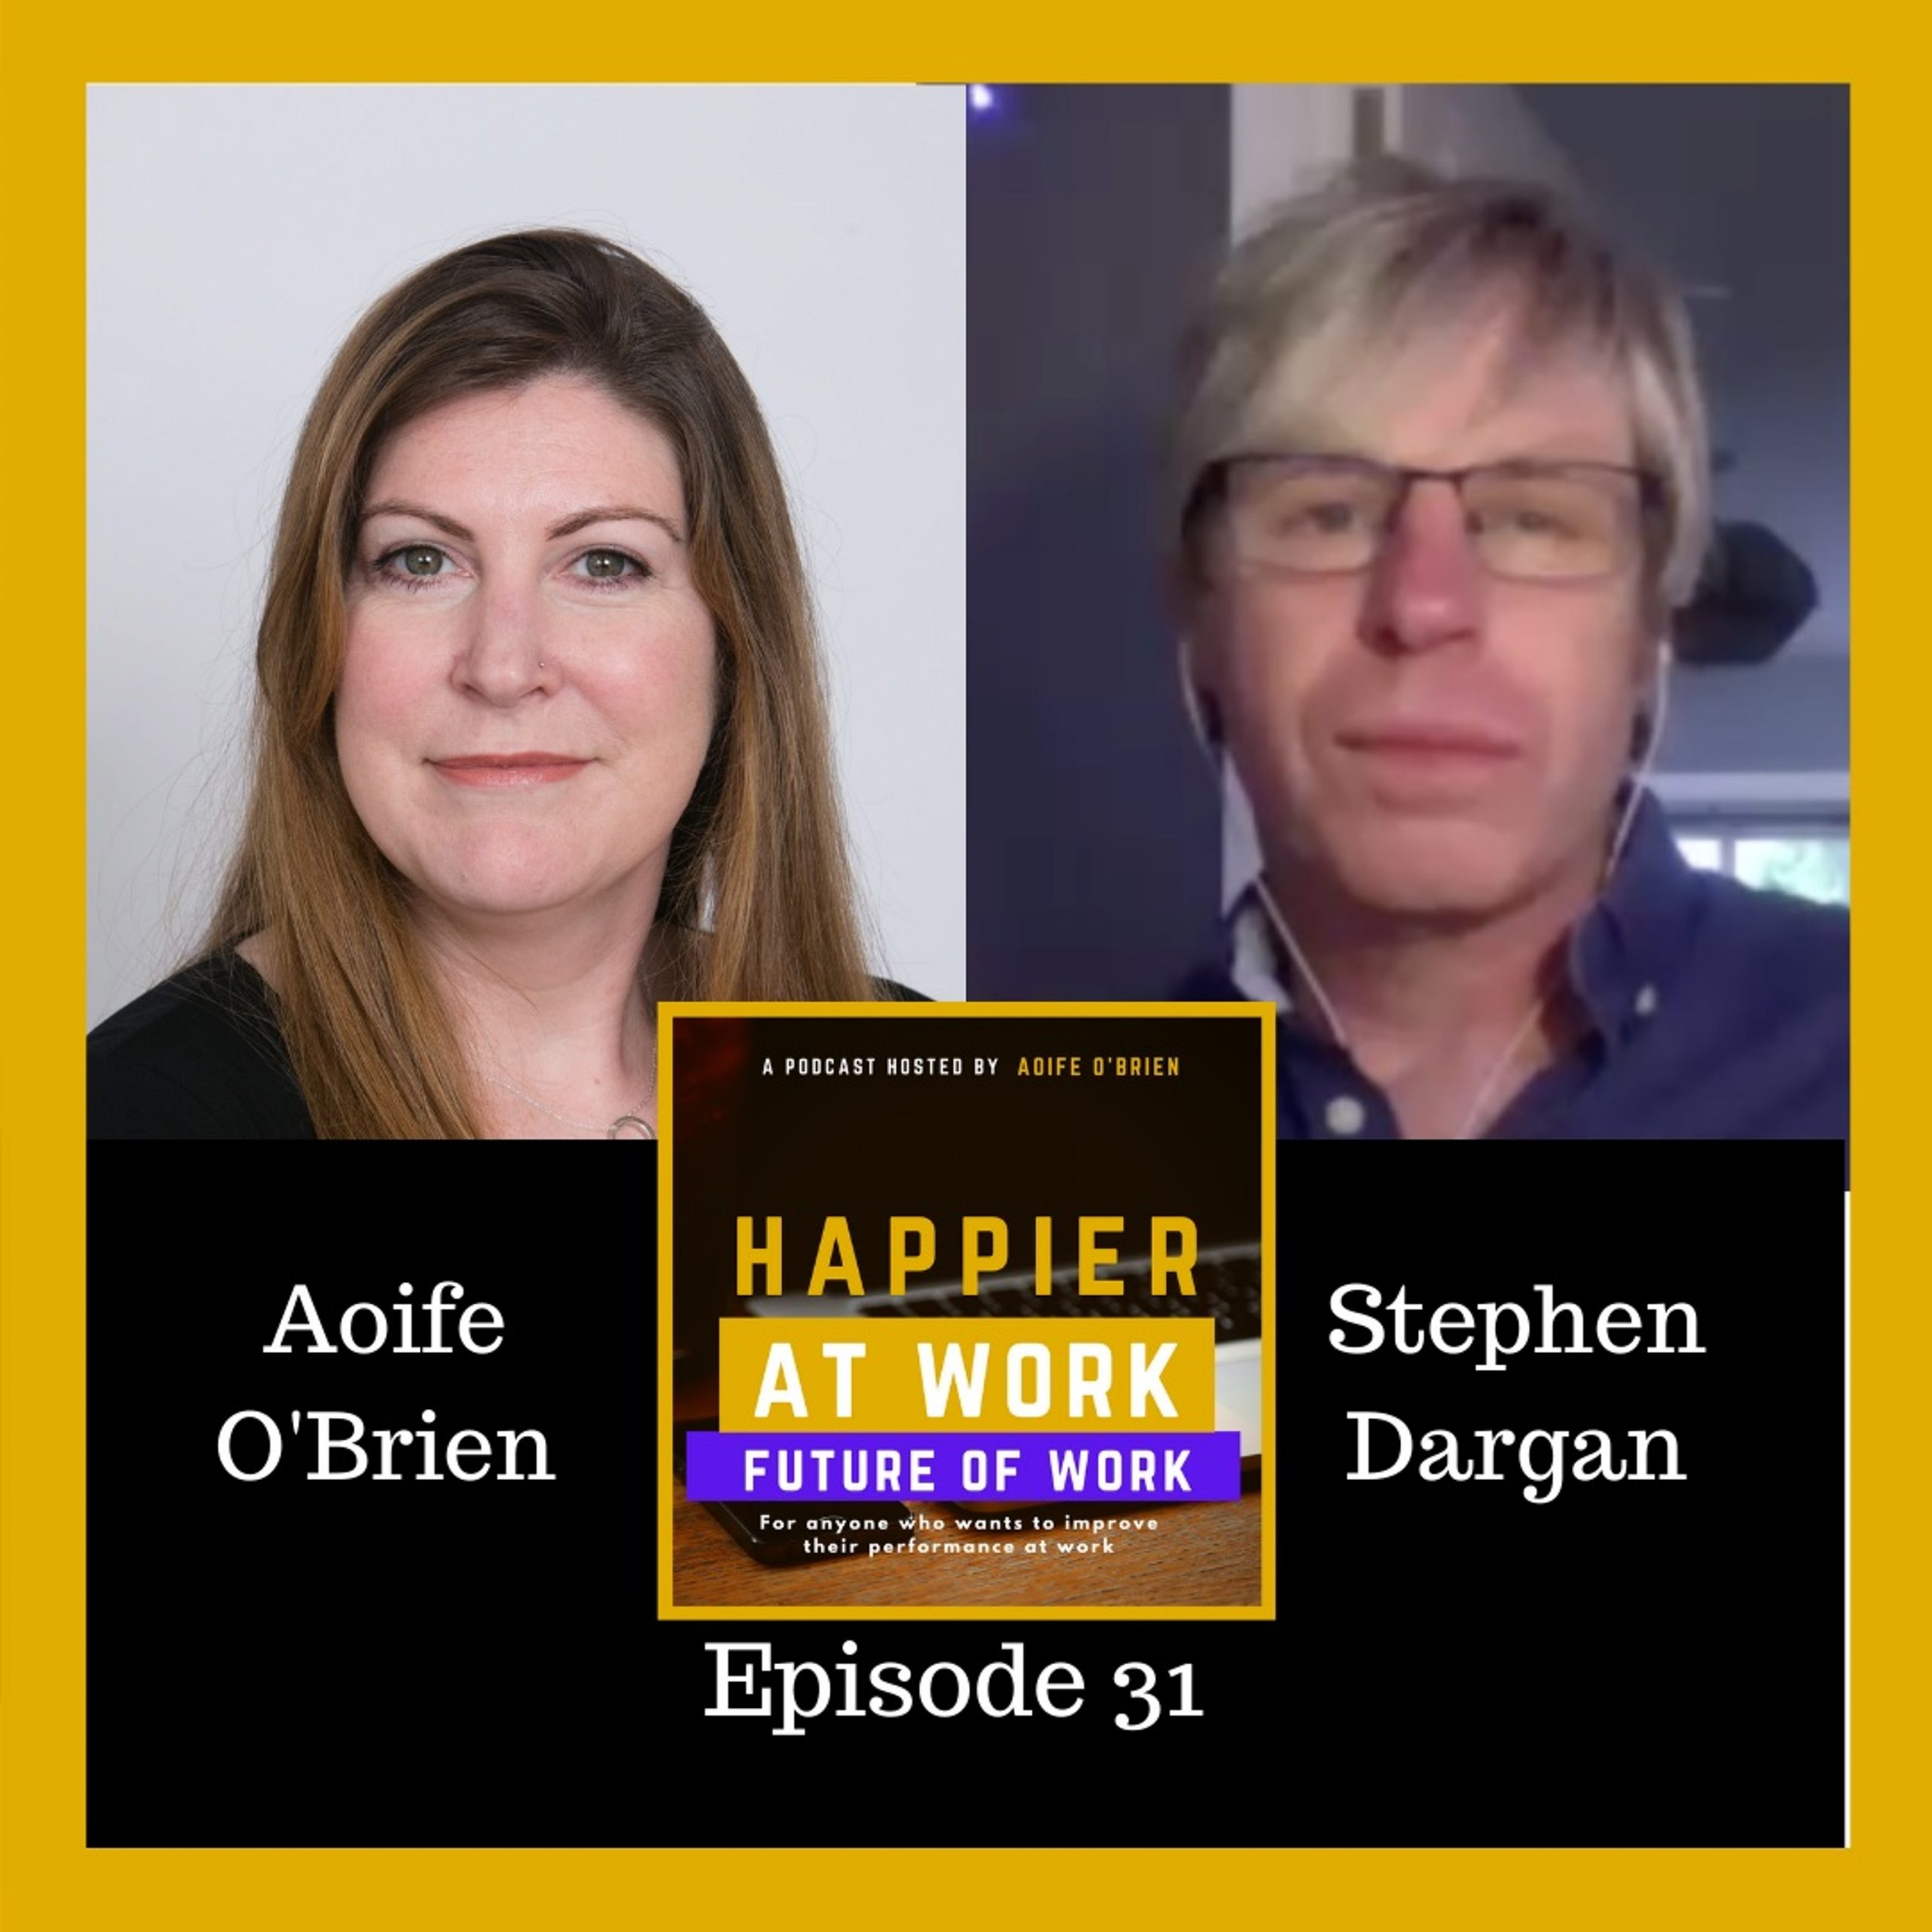 Happier at work podcast Stephen Dargan